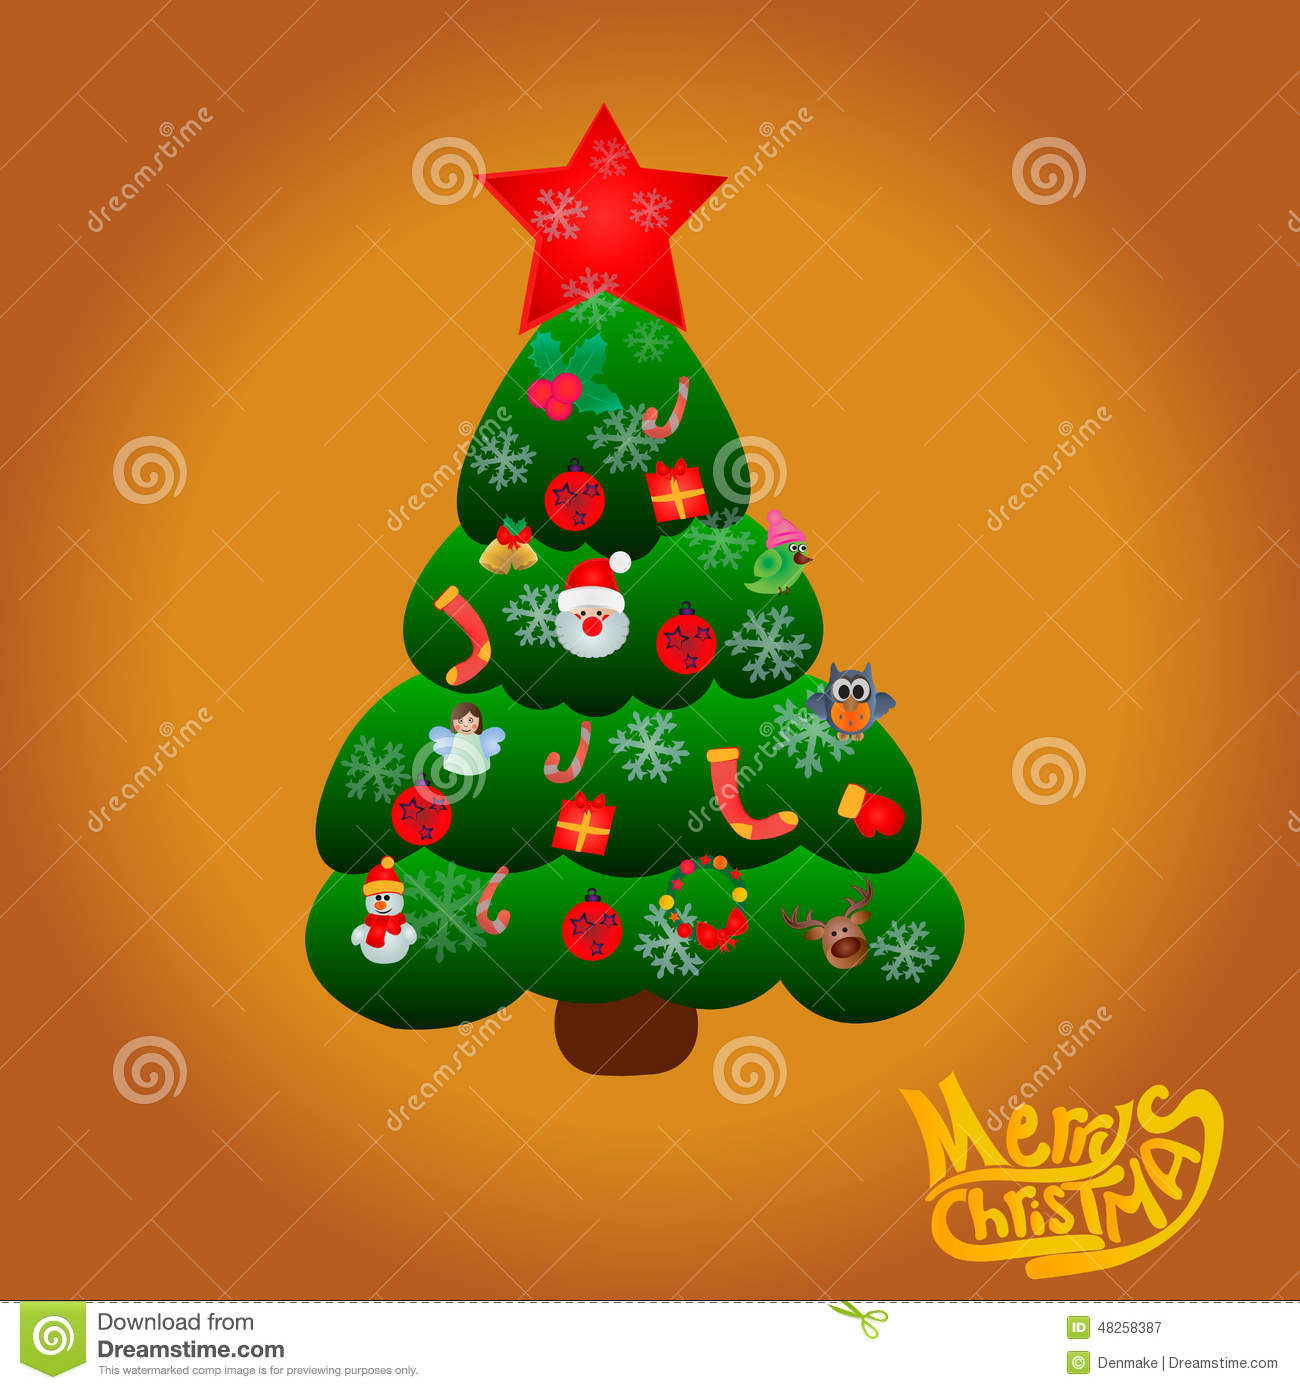 Christmas Toys Cards : Cartoon christmas tree with gifts and toys stock vector